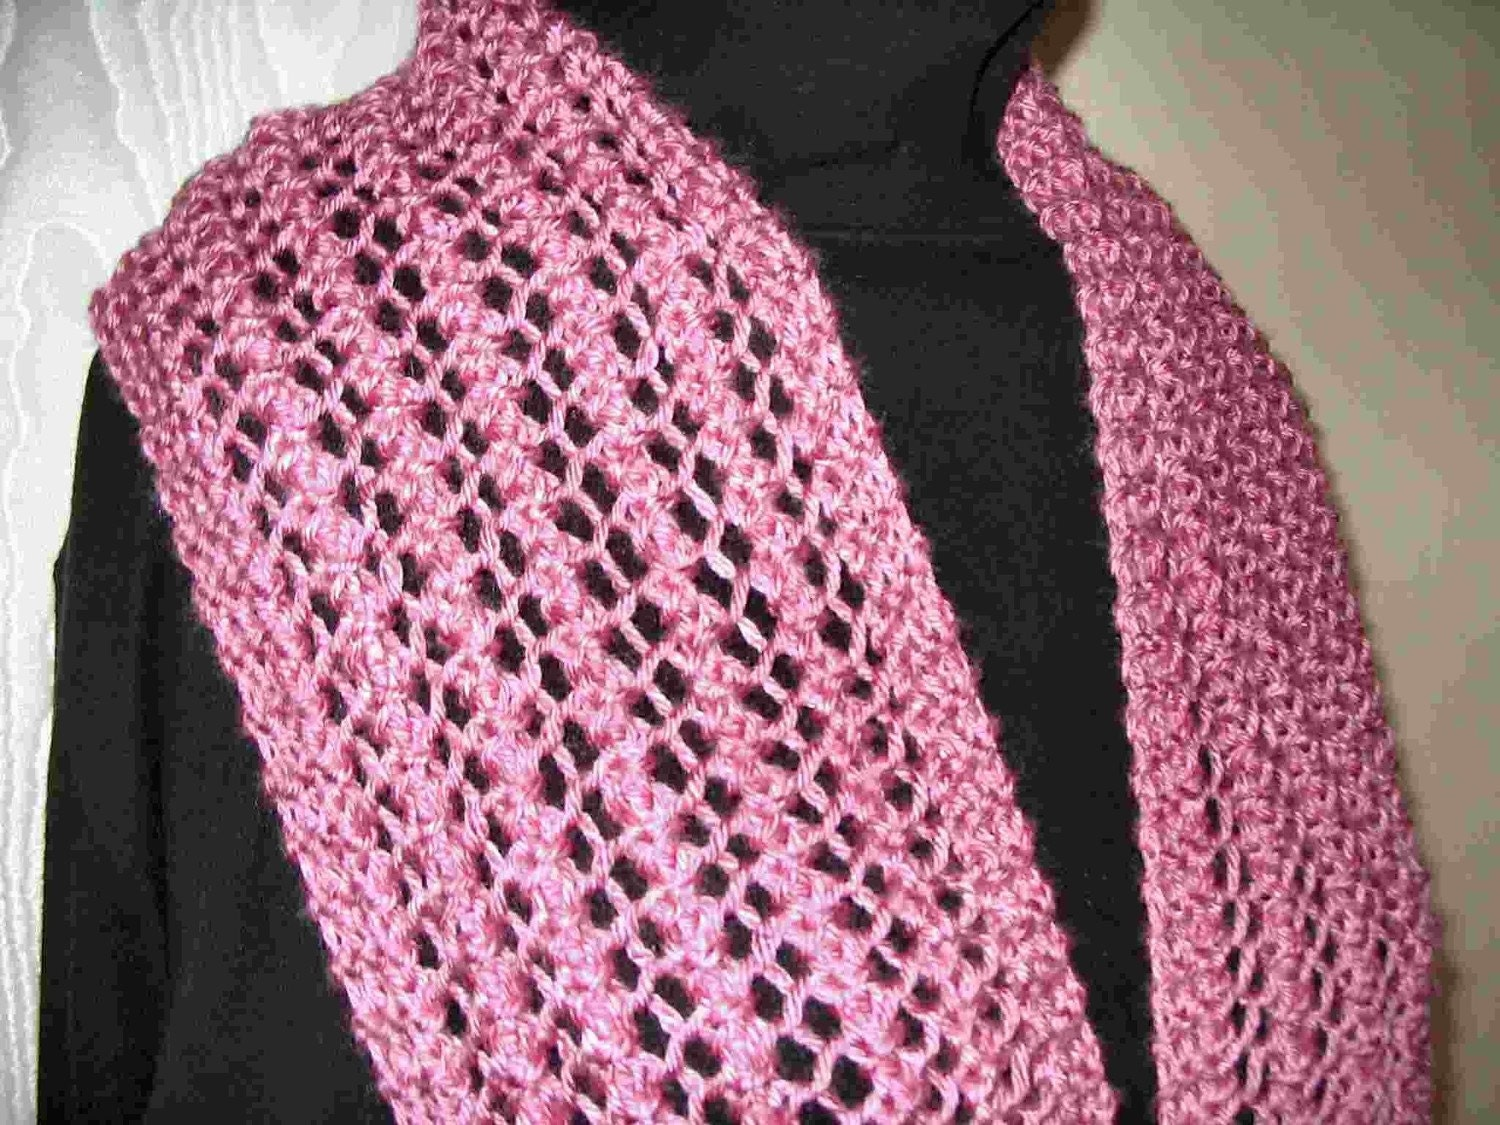 Free Knitting Scarf Patterns For Beginners : EASY LACE KNIT PATTERNS   Free Patterns